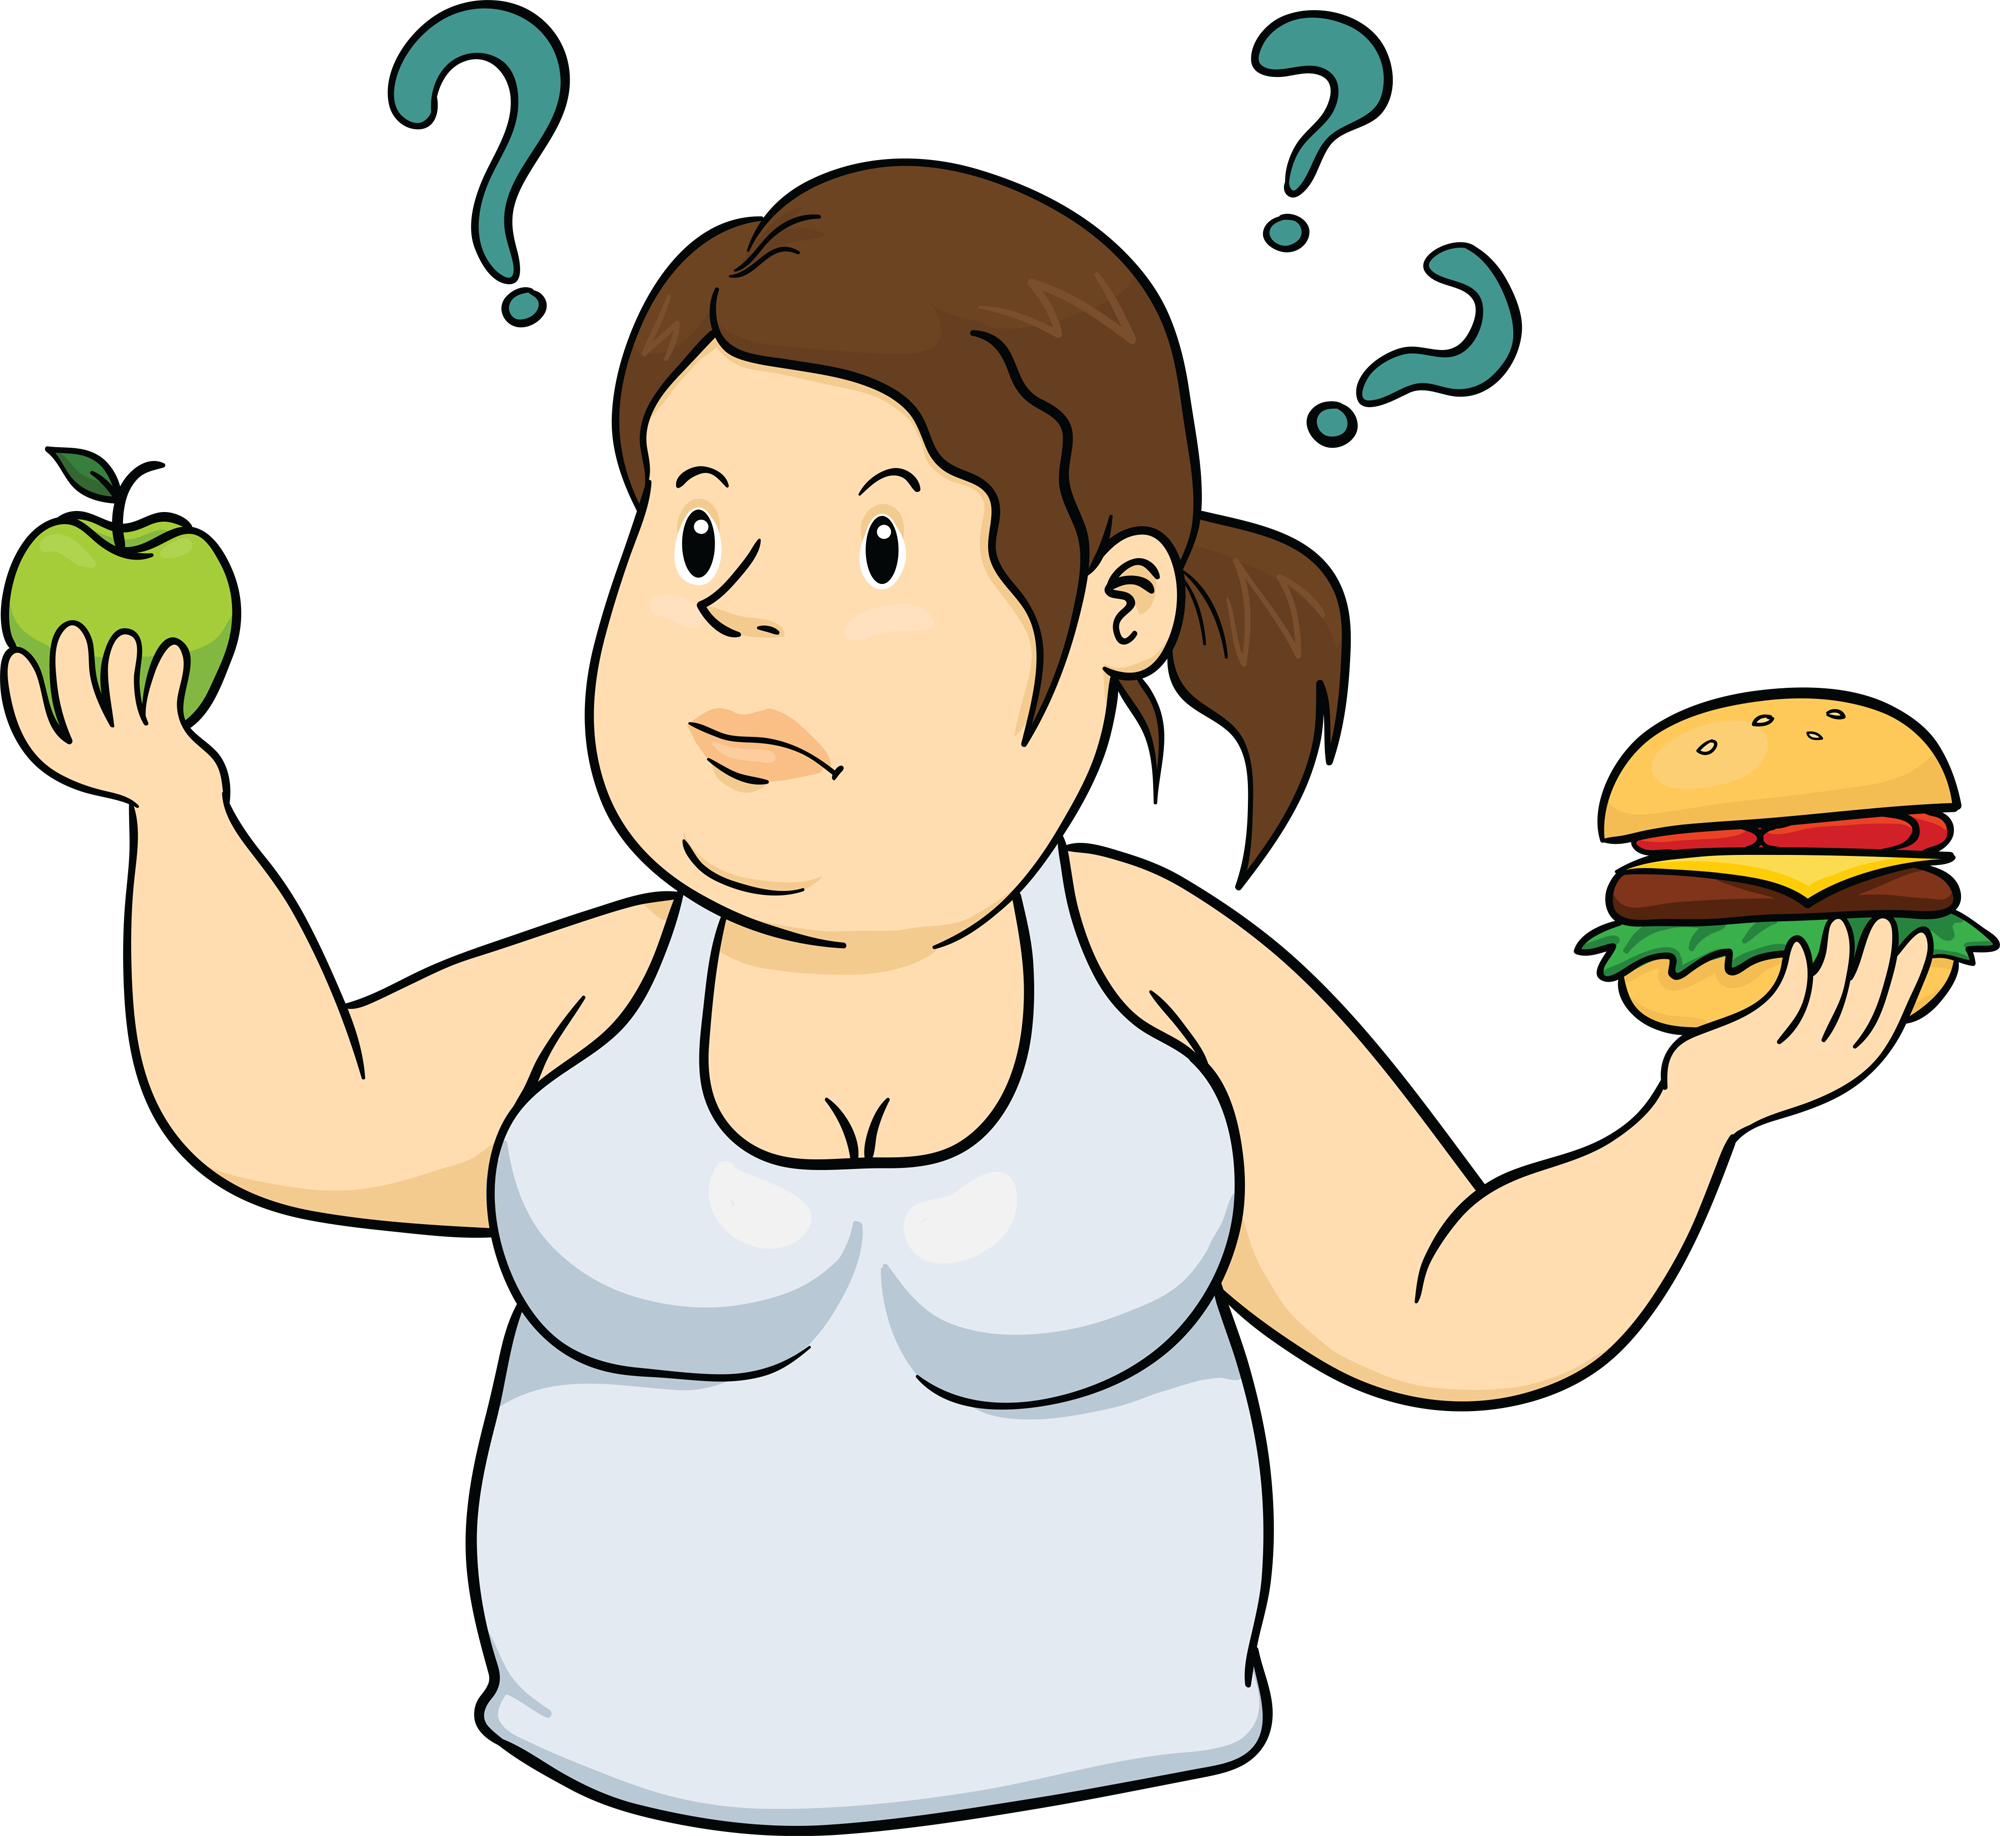 Lost vector person clipart. Collection of free dieted